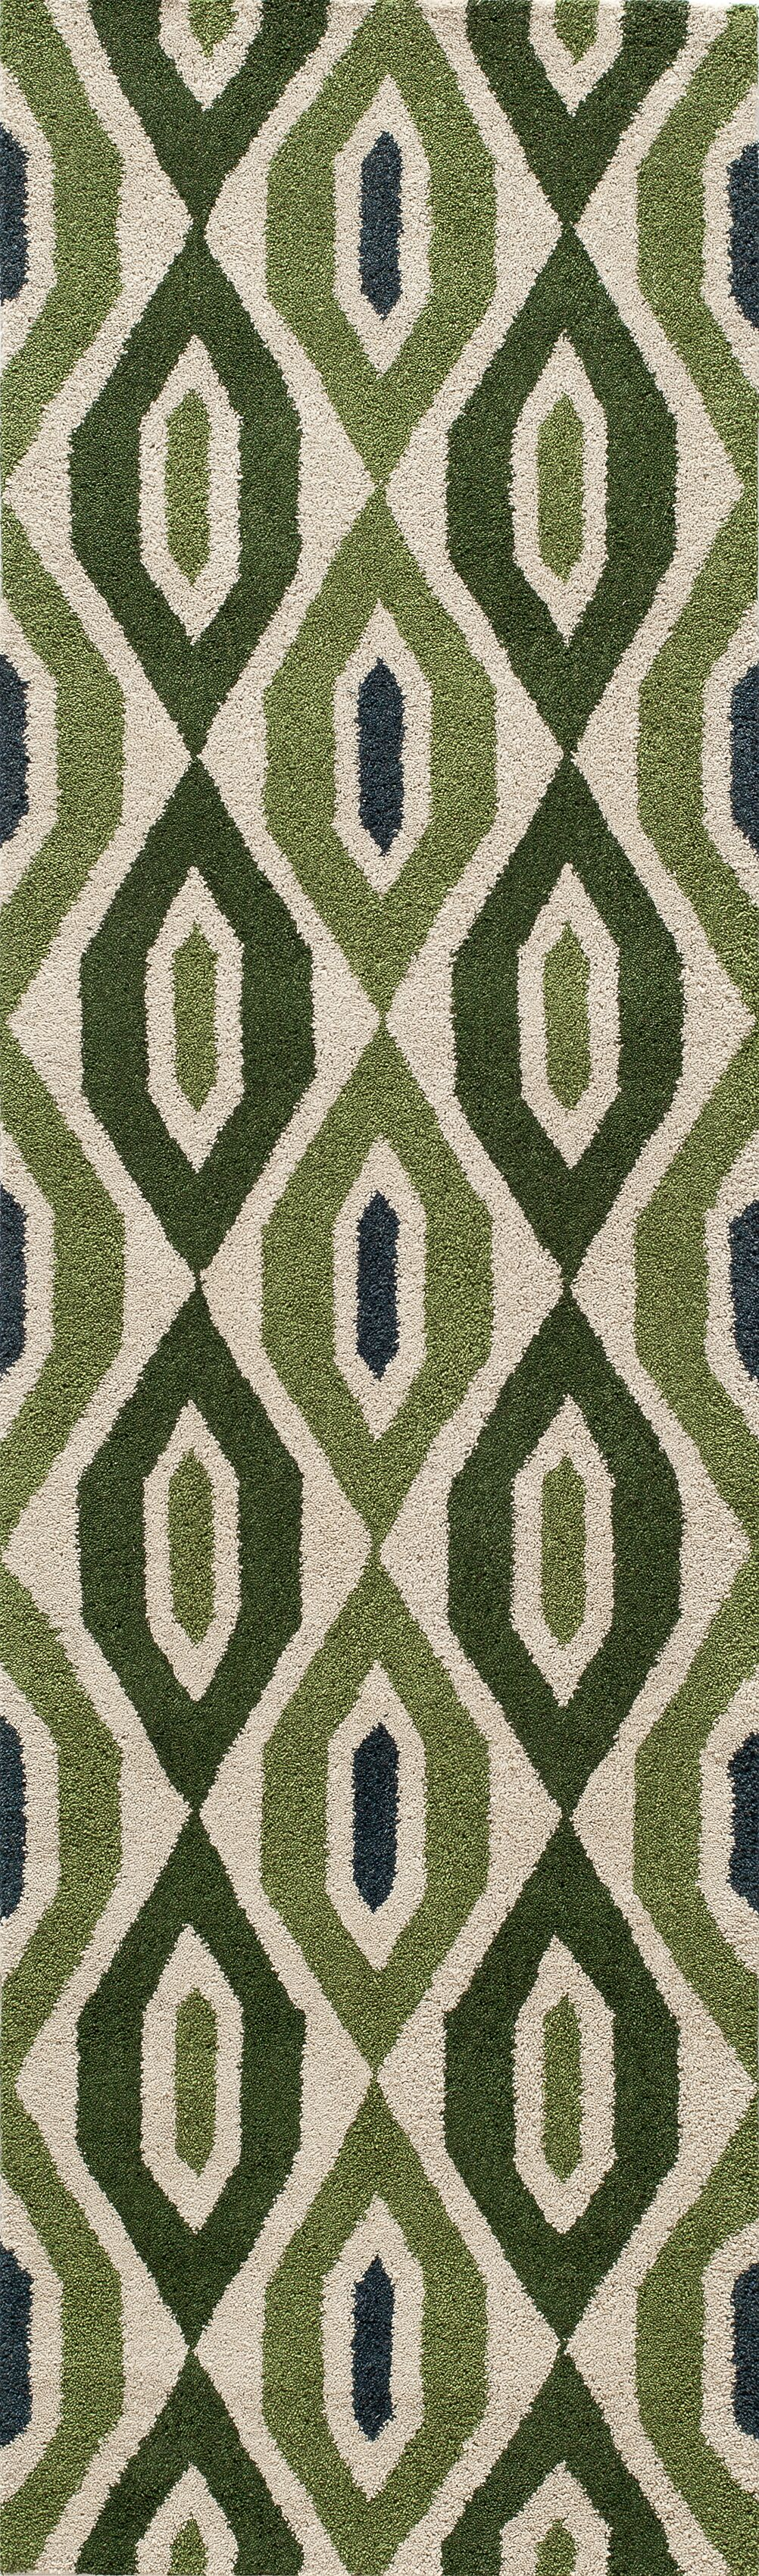 Elvera Hand-Tufted Green Area Rug Rug Size: Runner 2'3